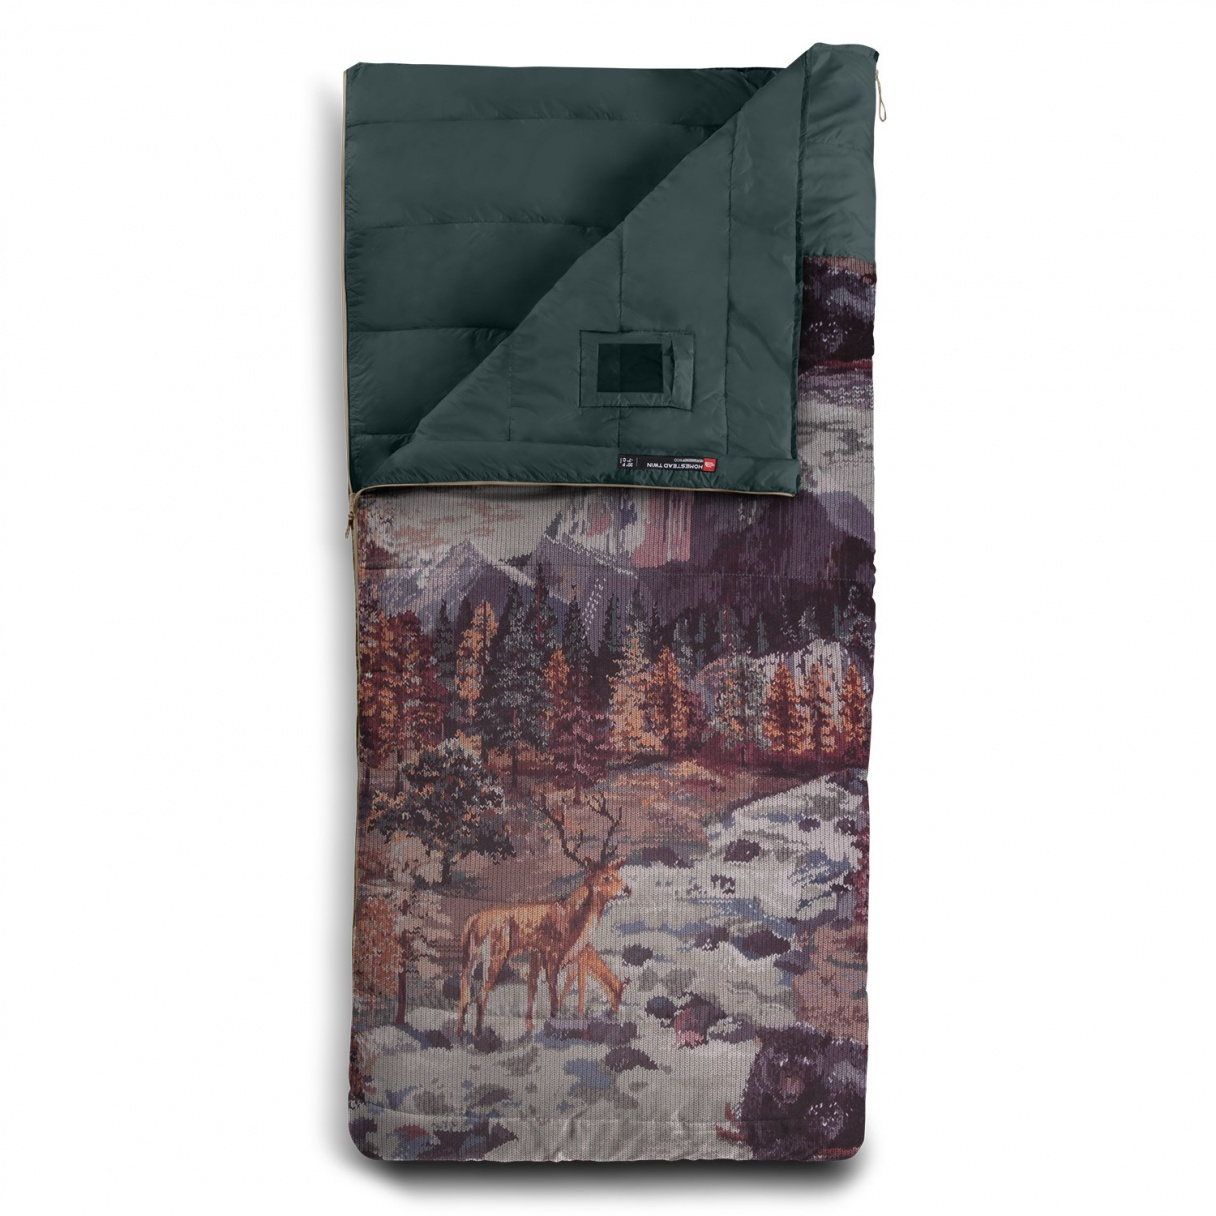 the-north-face-homestead-twin-40f-sleeping-bag-darkest-spruce-yosemite-sofa-print-darkest-spruce